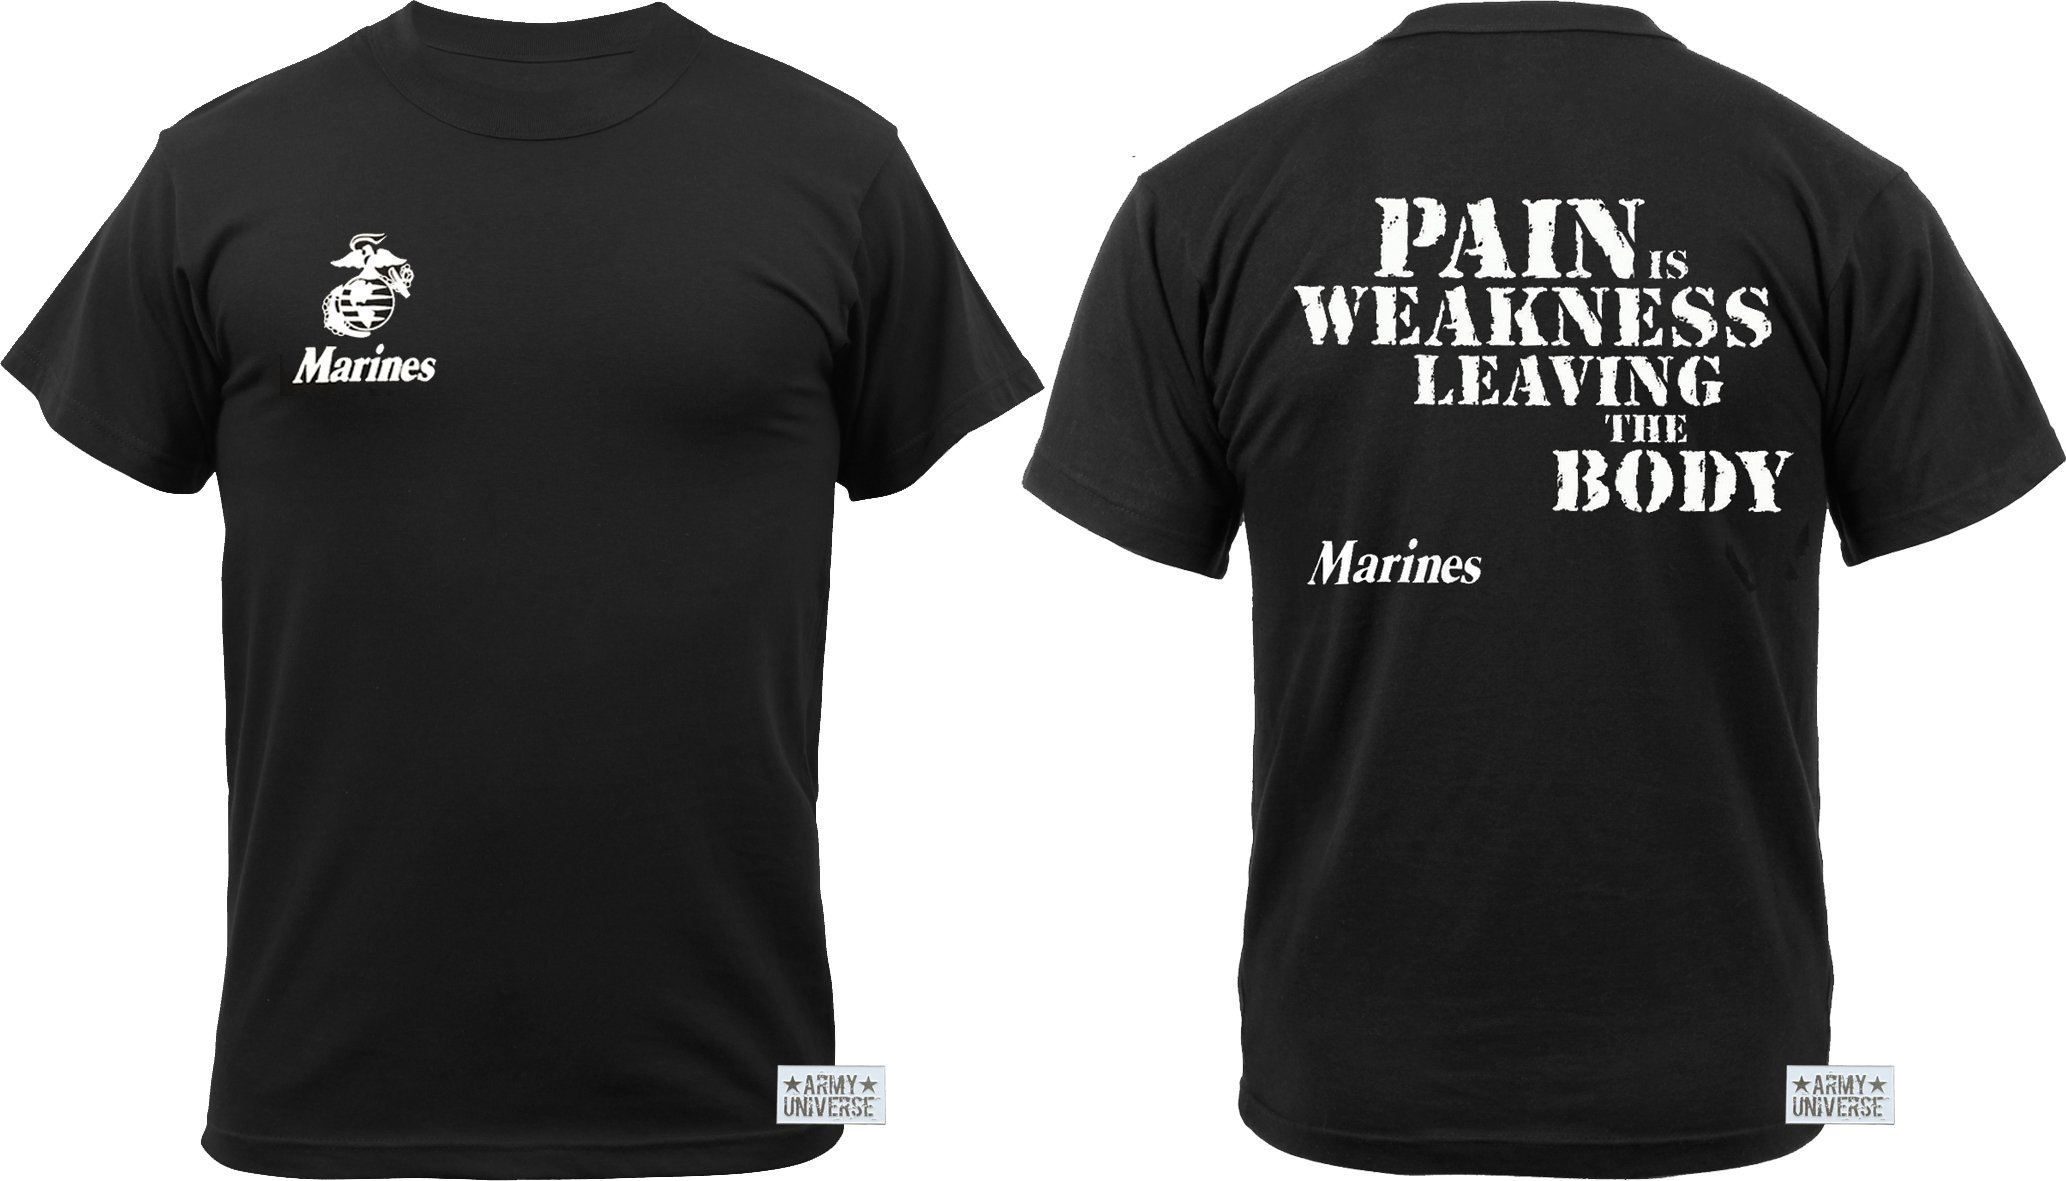 Army Universe Black USMC US Marines Pain is Weakness Leaving The Body Double Sided T-Shirt Pin (Size Medium / 37''-41'')